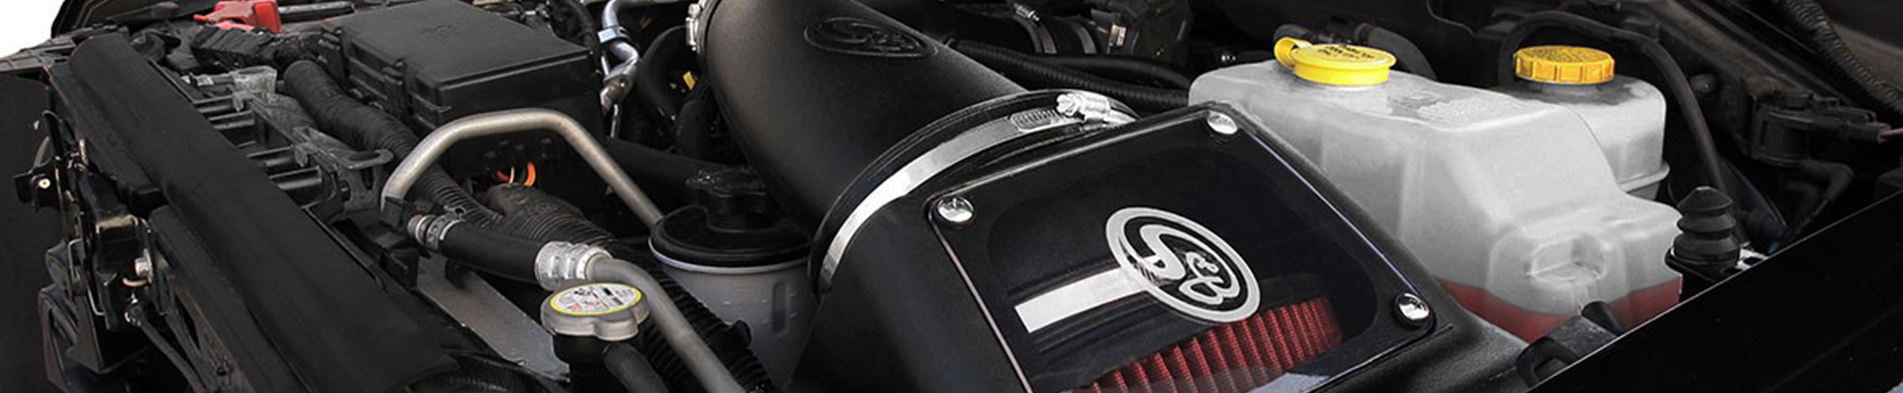 cold-air-intake-banner.jpg